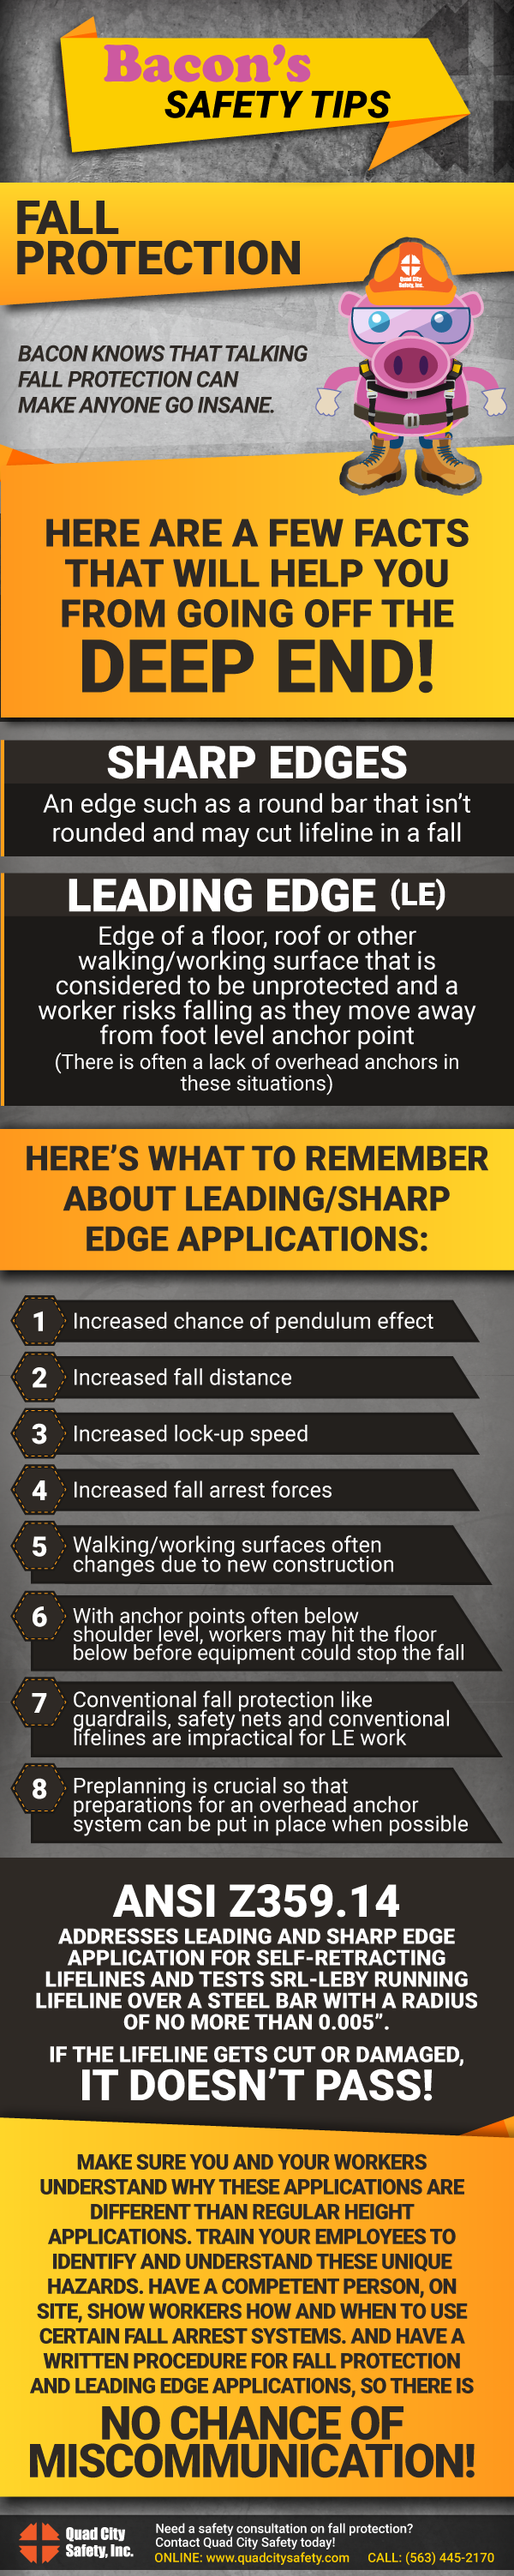 Bacon's Safety Tip: Facts about Leading Edge Applications